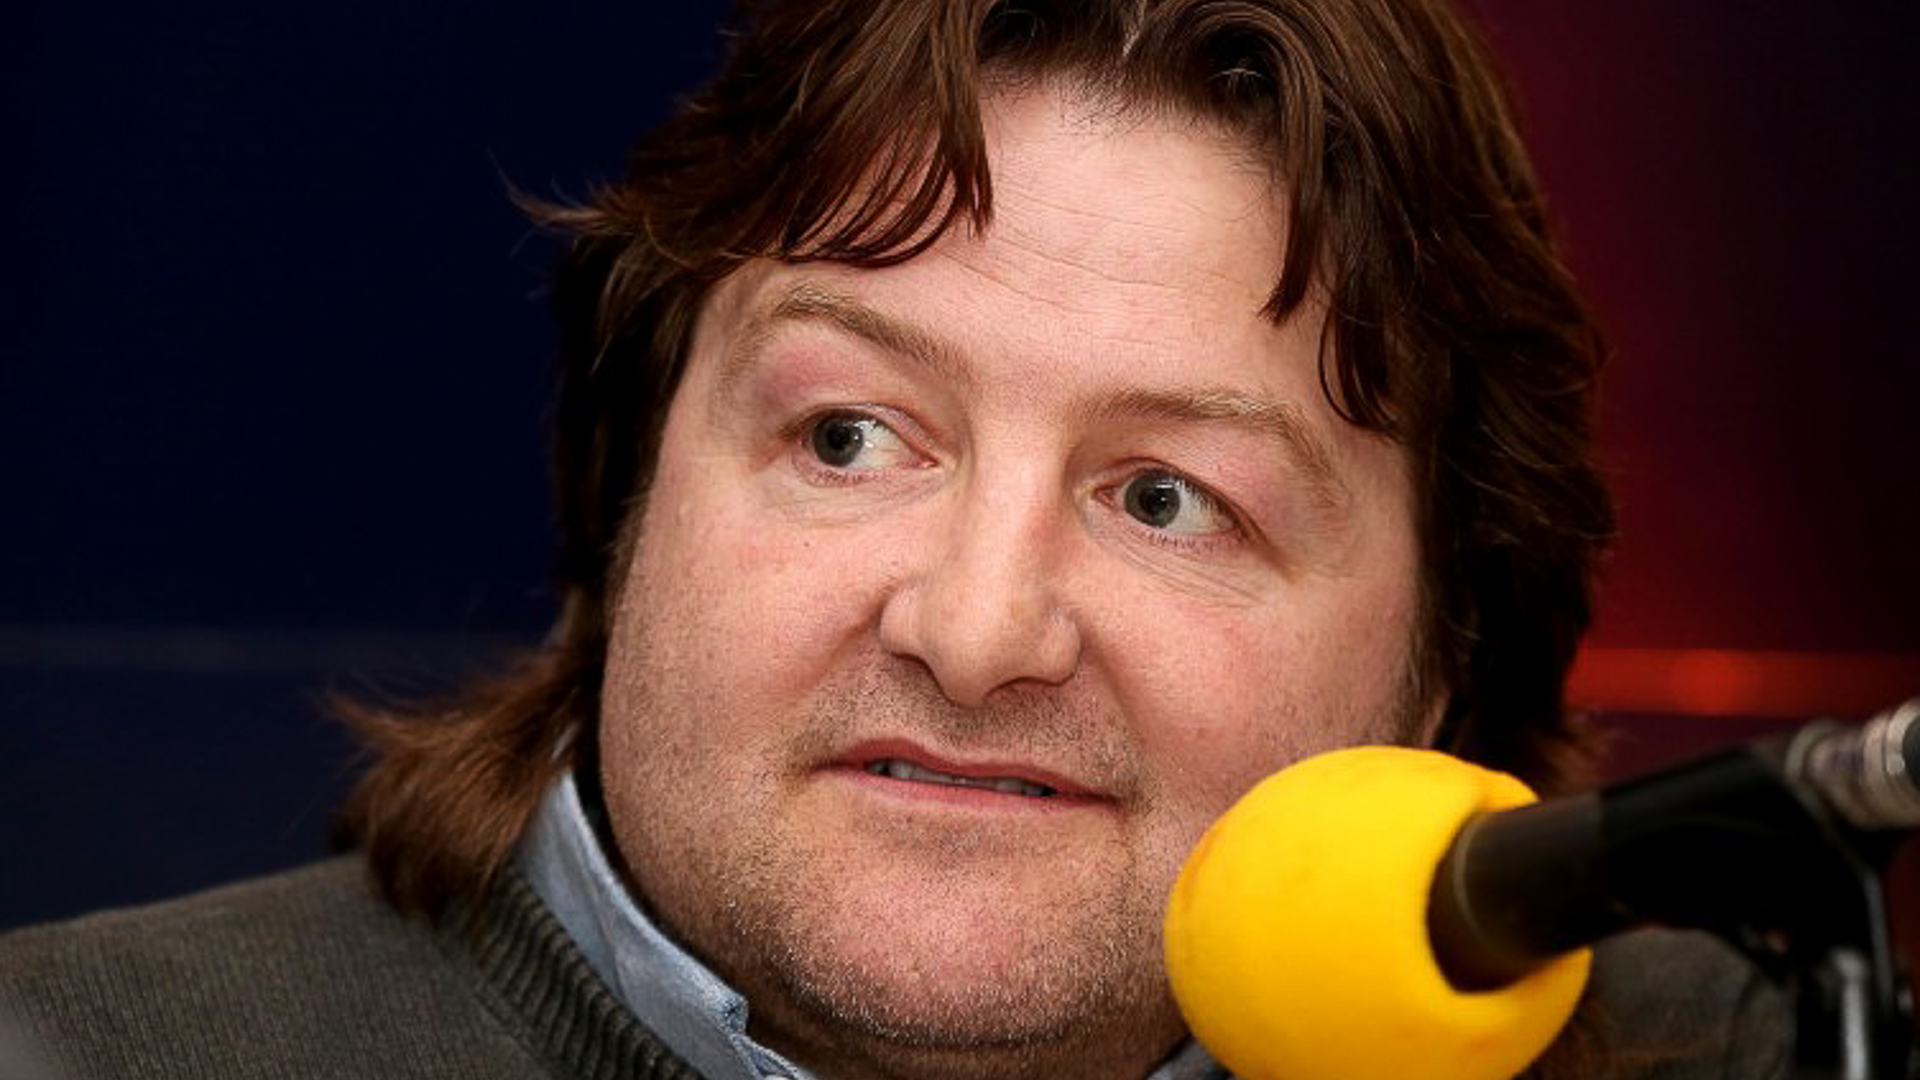 Shane is a regular speaker on Irish radio and television as a sports pundit.